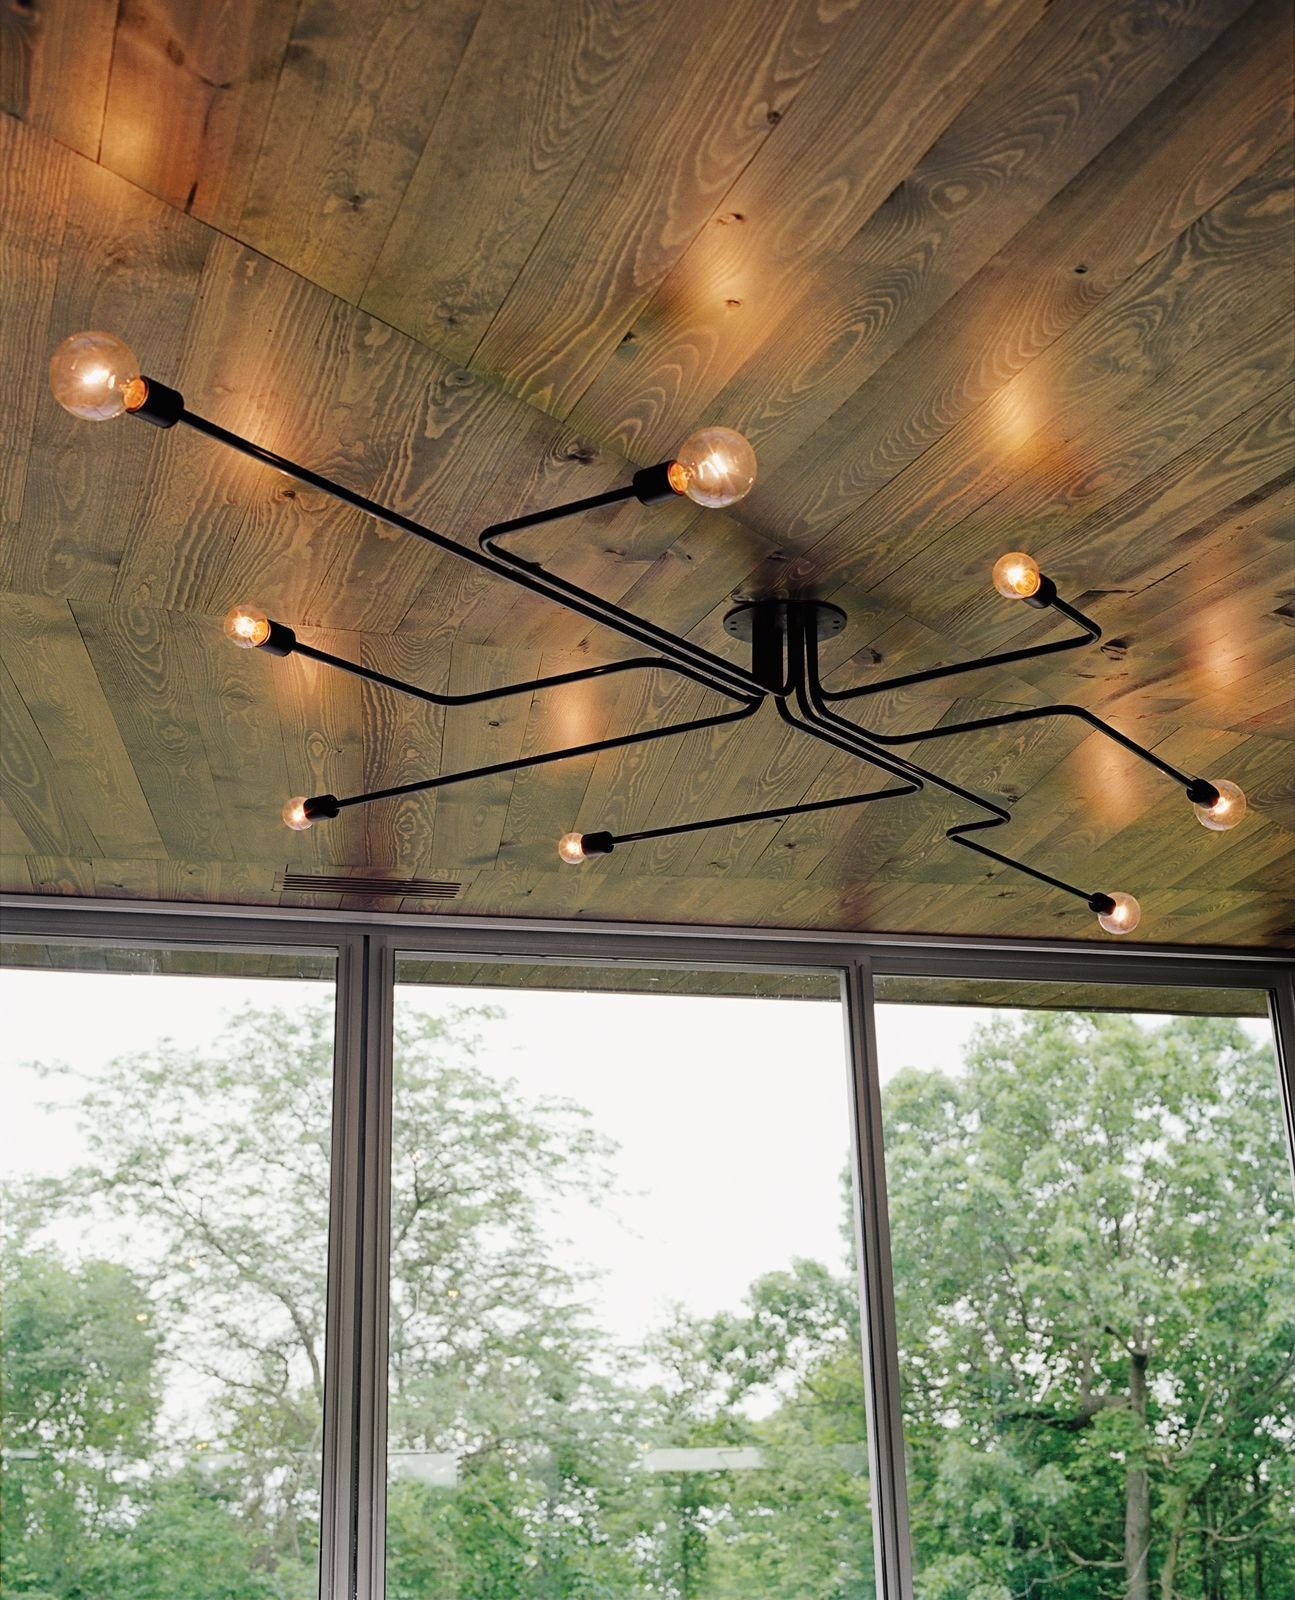 Bedroom Ceiling Light Ideas Lovely Pin On Home is Were I Sh T fortably